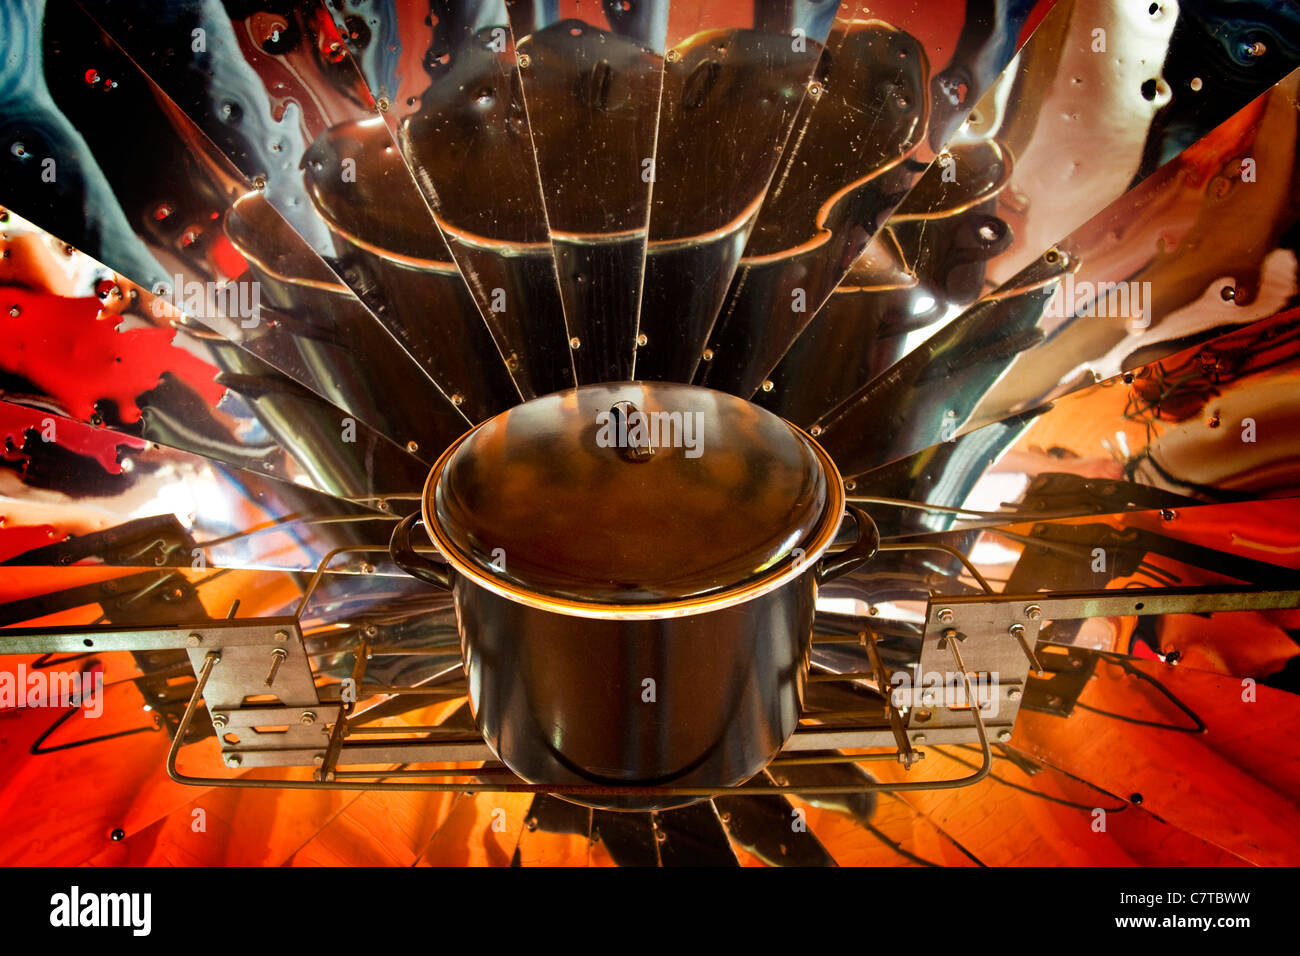 Solar cooking stove - Stock Image